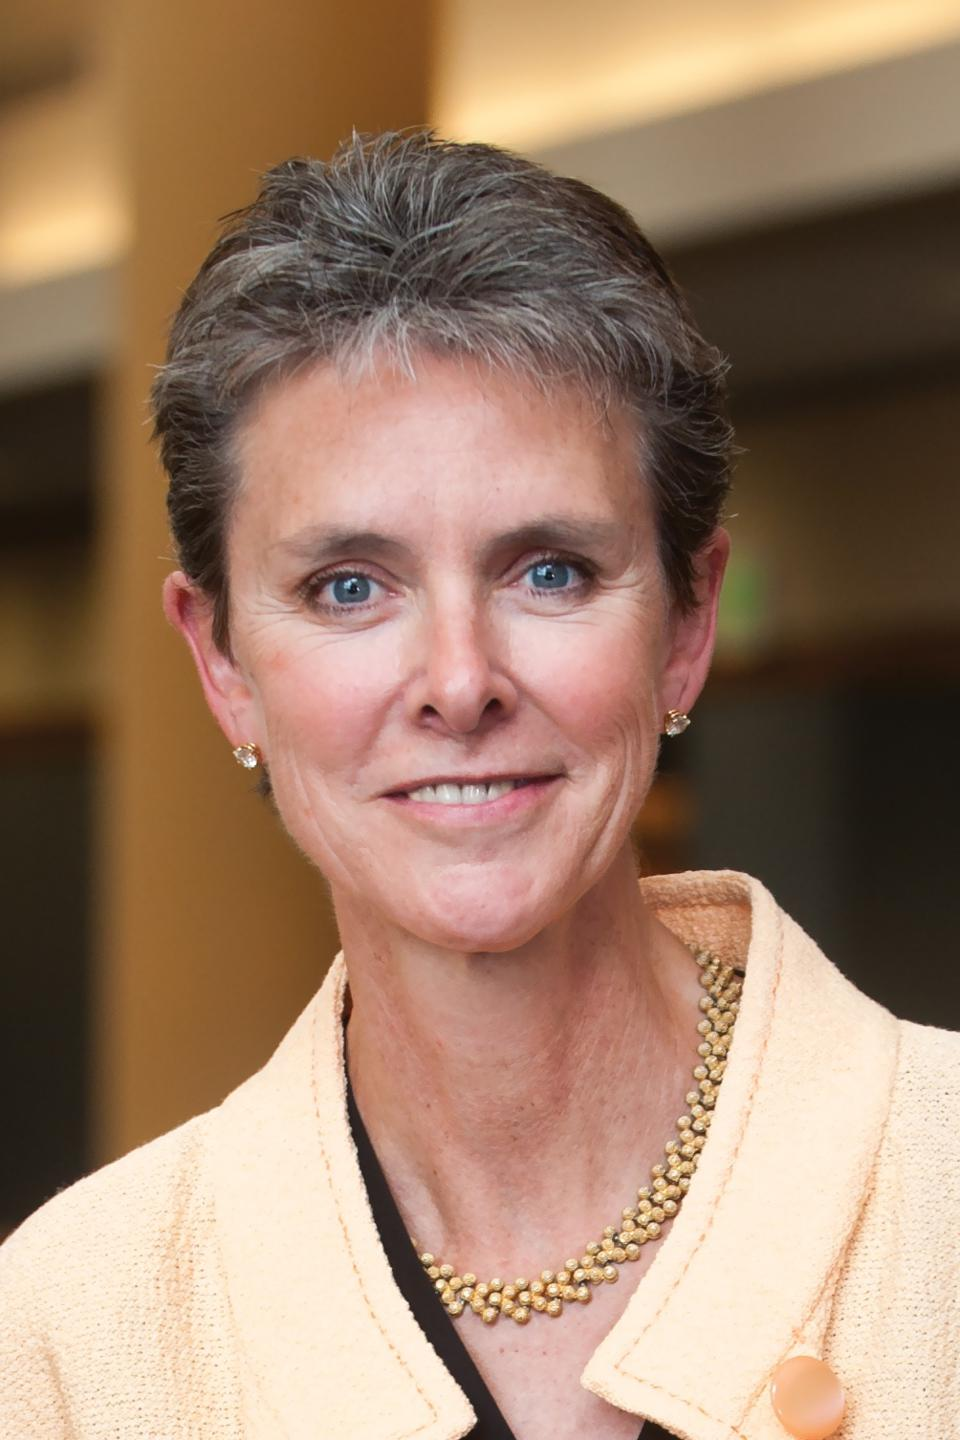 Beth Brooke, former Global Vice Chair of Ernst & Young.